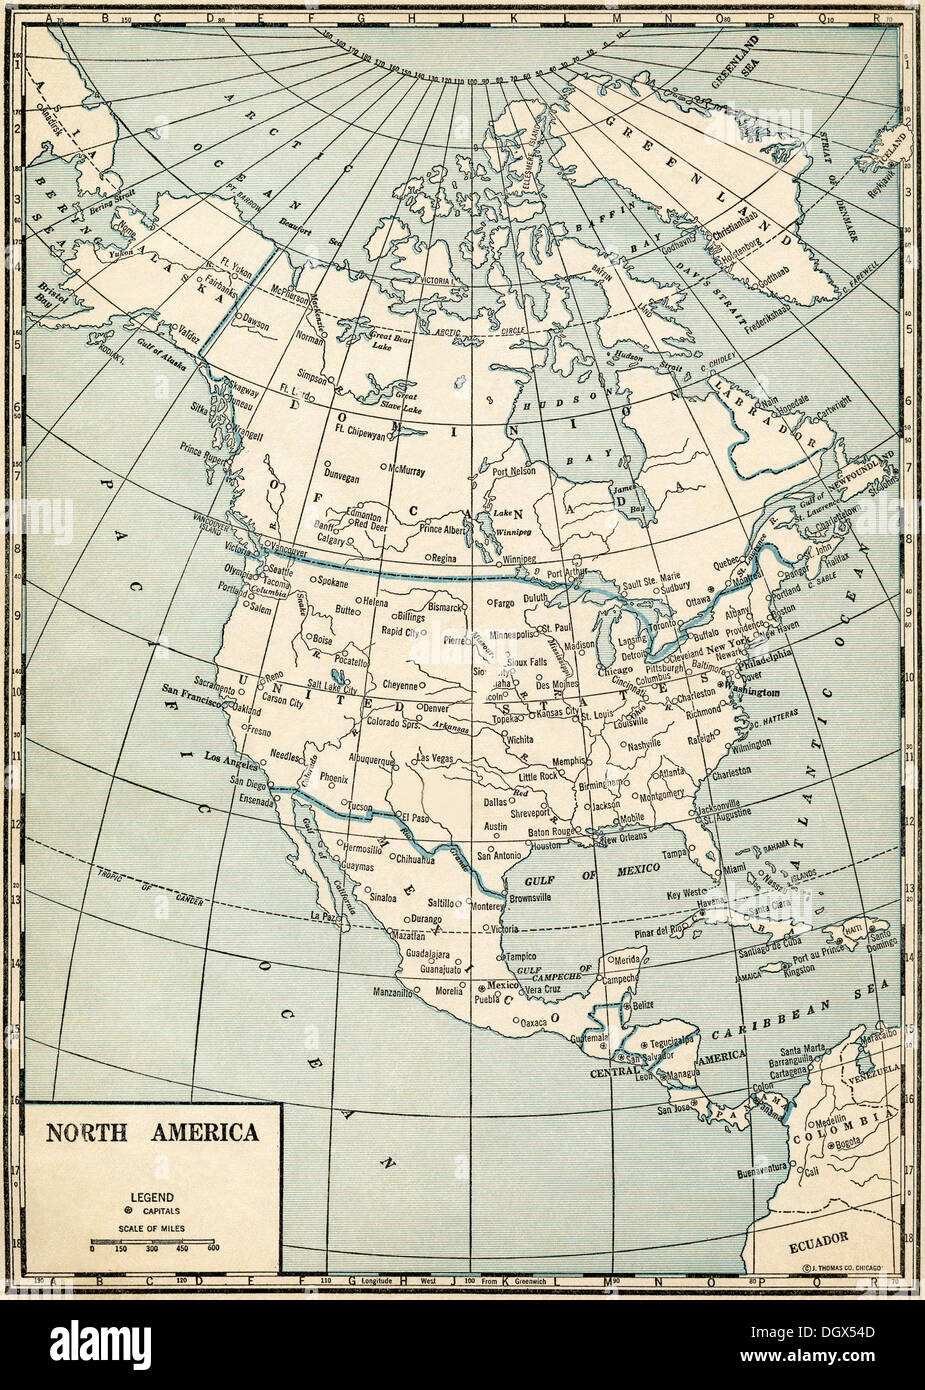 Old map of North America, 1930's - Stock Image